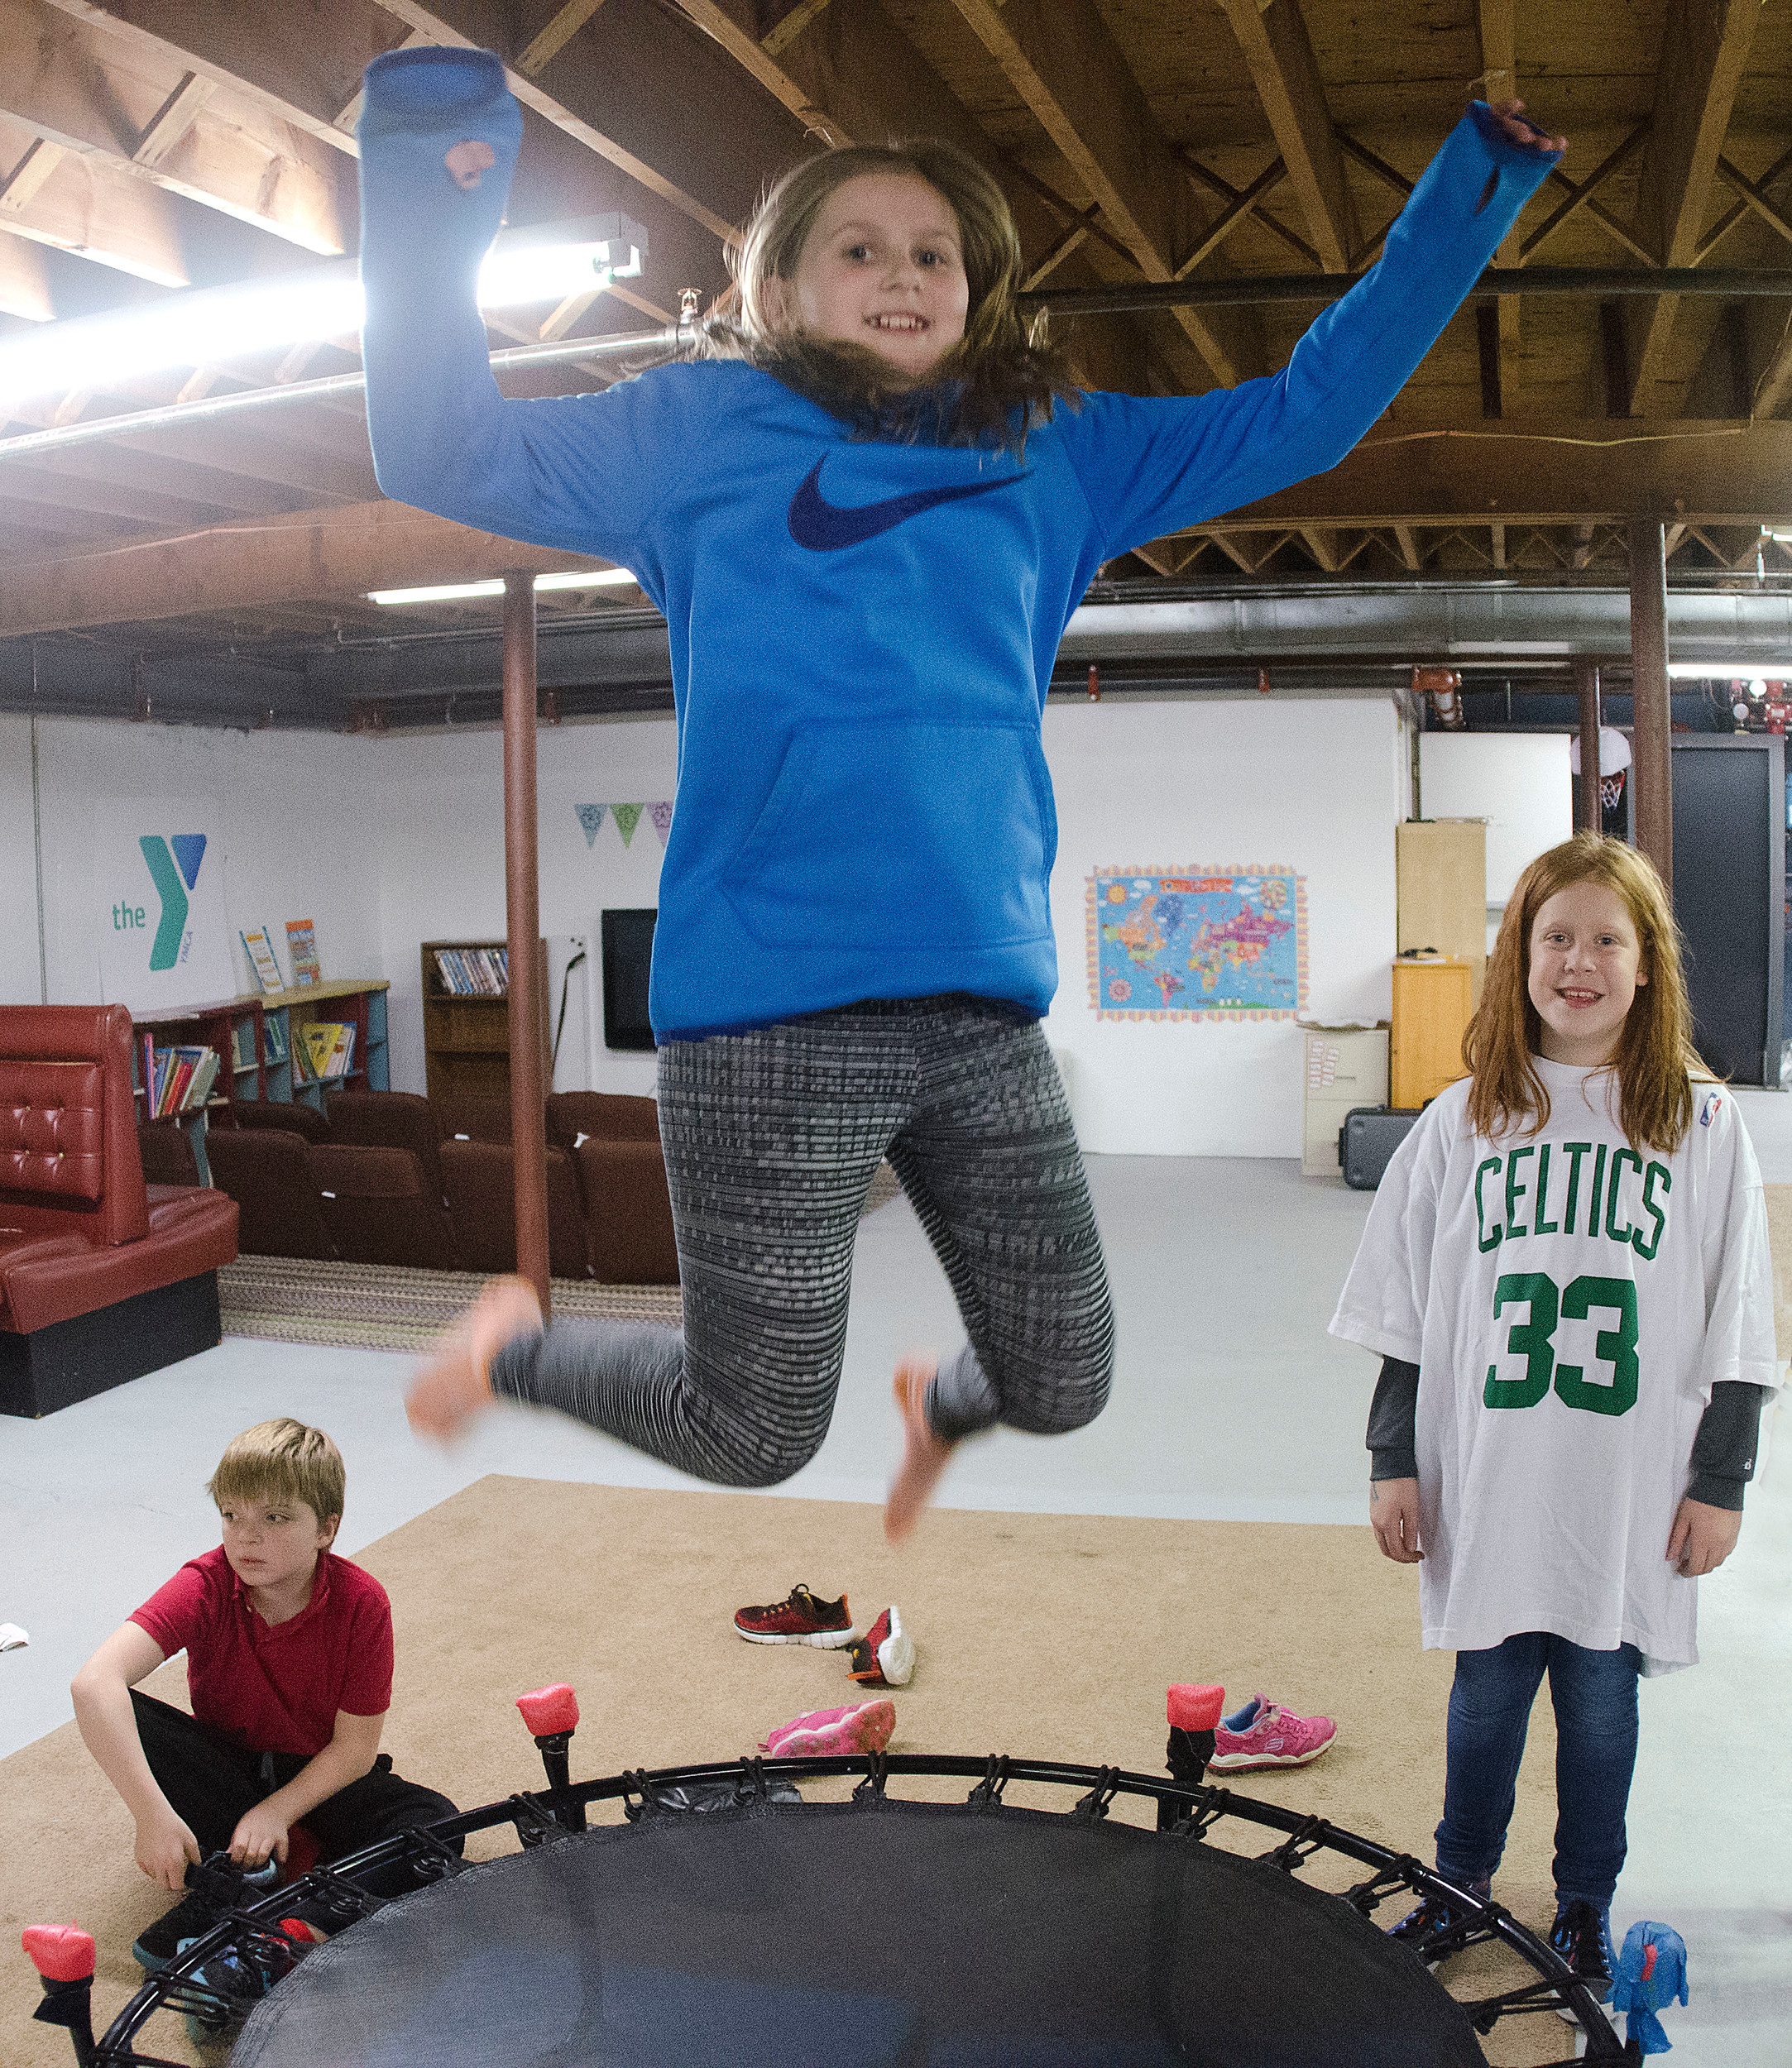 Caitlin Mediate, 10, jumps on the indoor trampoline as her friend, Ava McDermott (right), 9, and another boy look on.